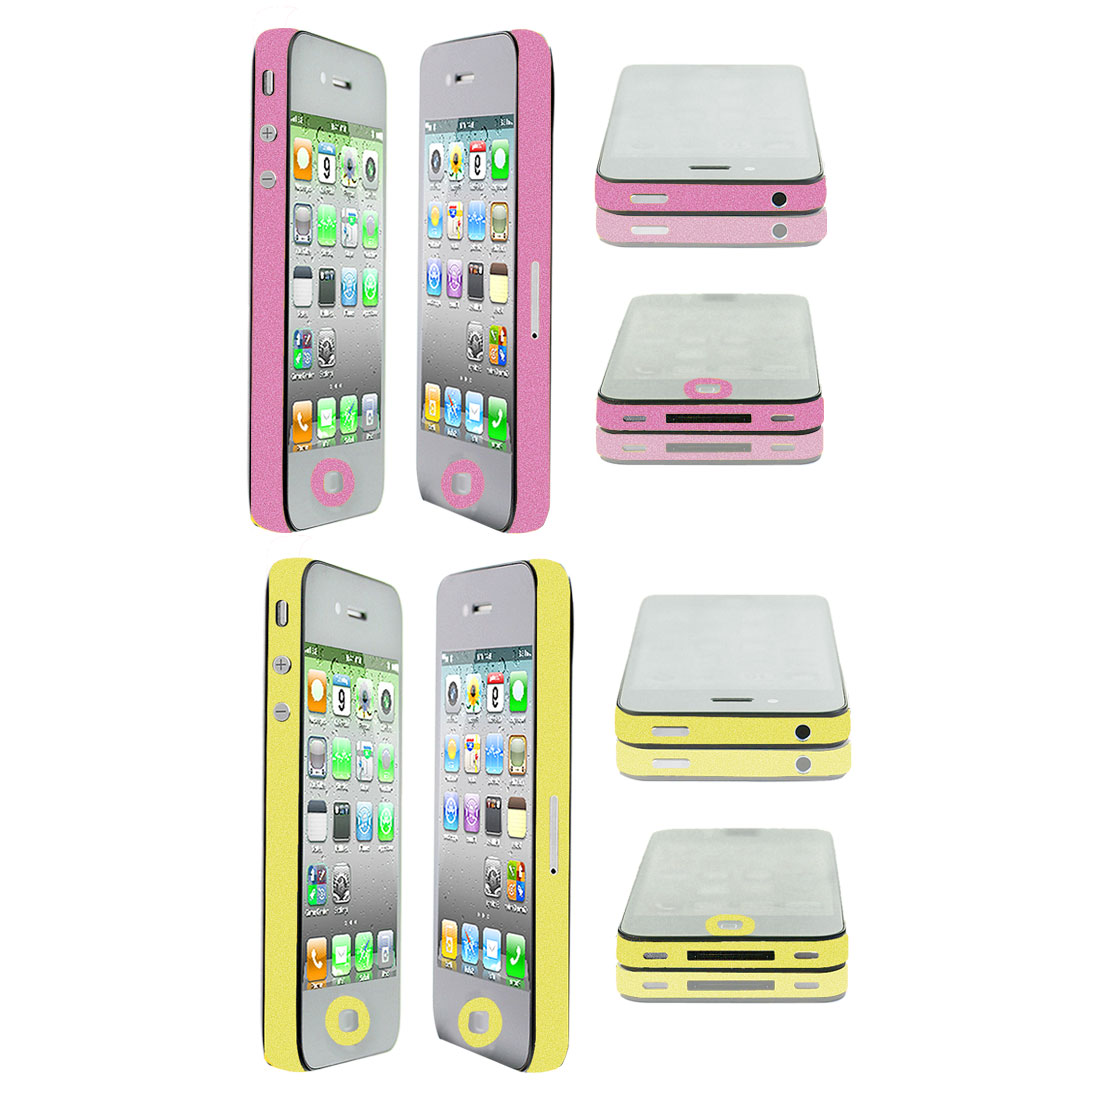 2 Pcs Frame Edge Wrap Decal Button Sticker Shield Yellow Pink for iPhone 4 4G 4S